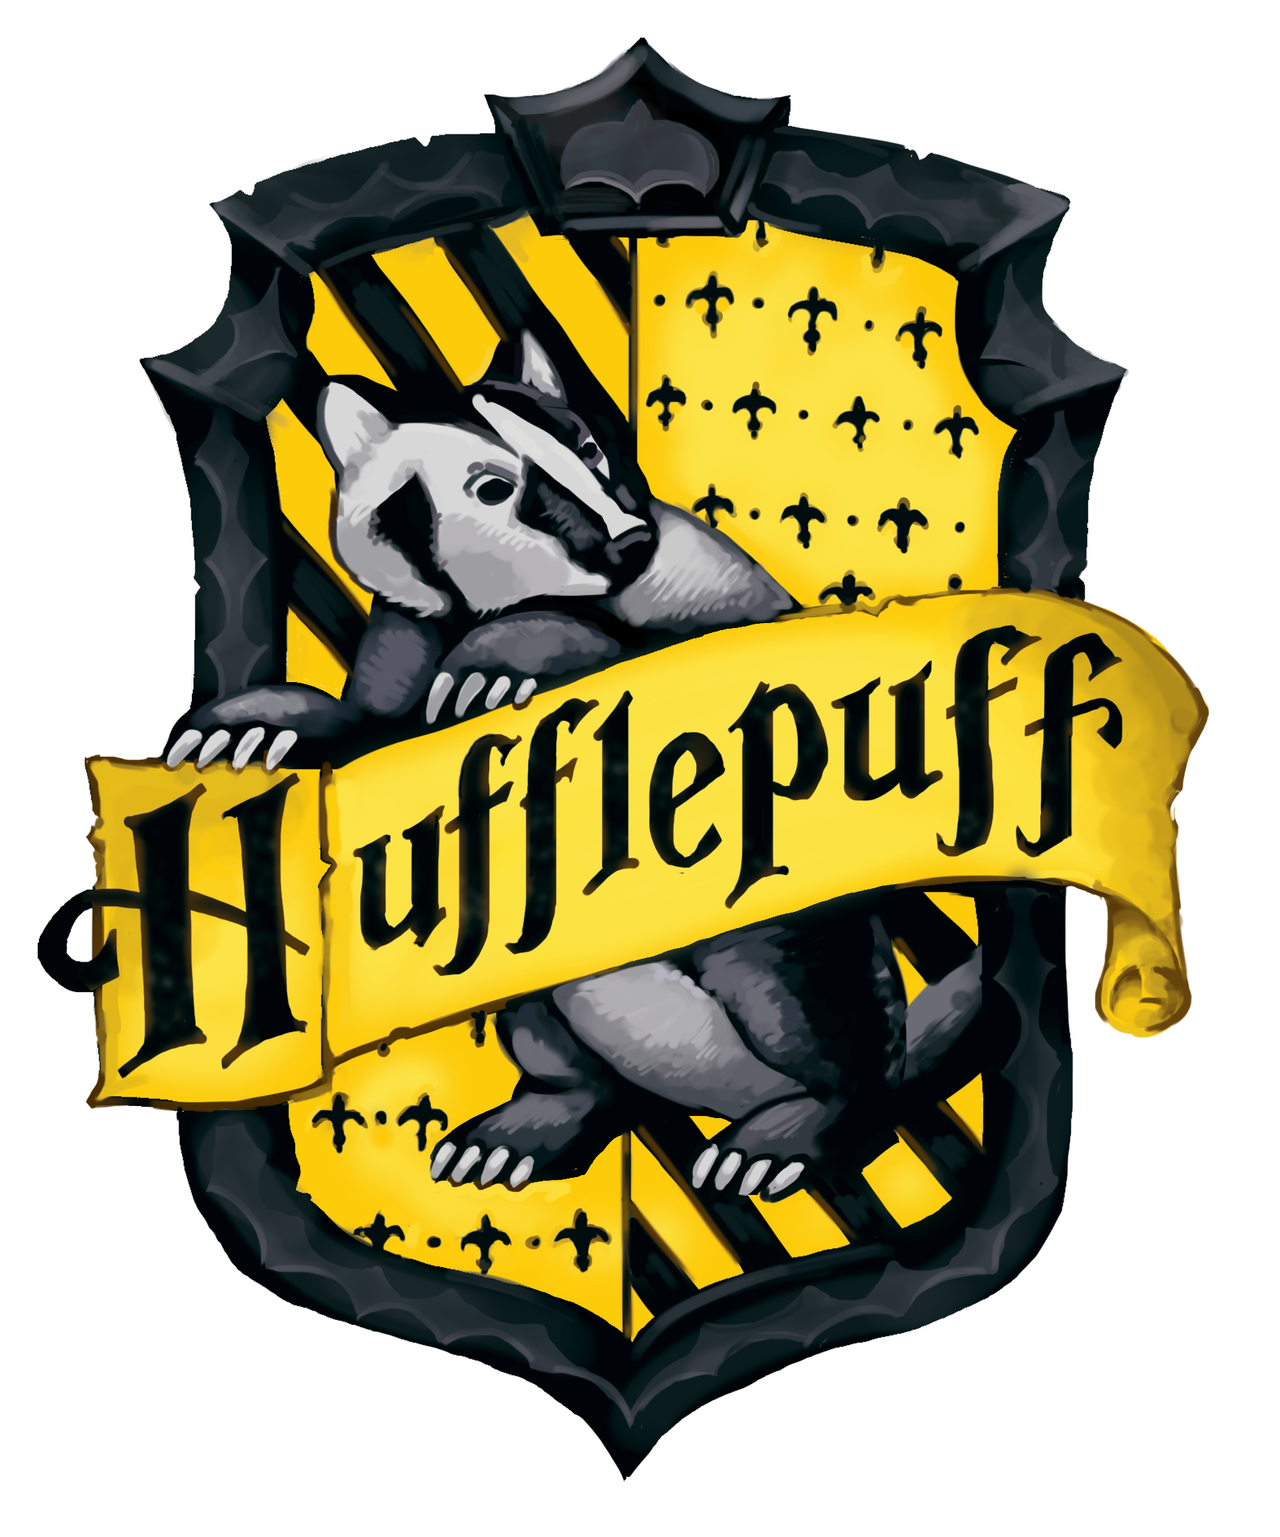 House of Hufflepuff